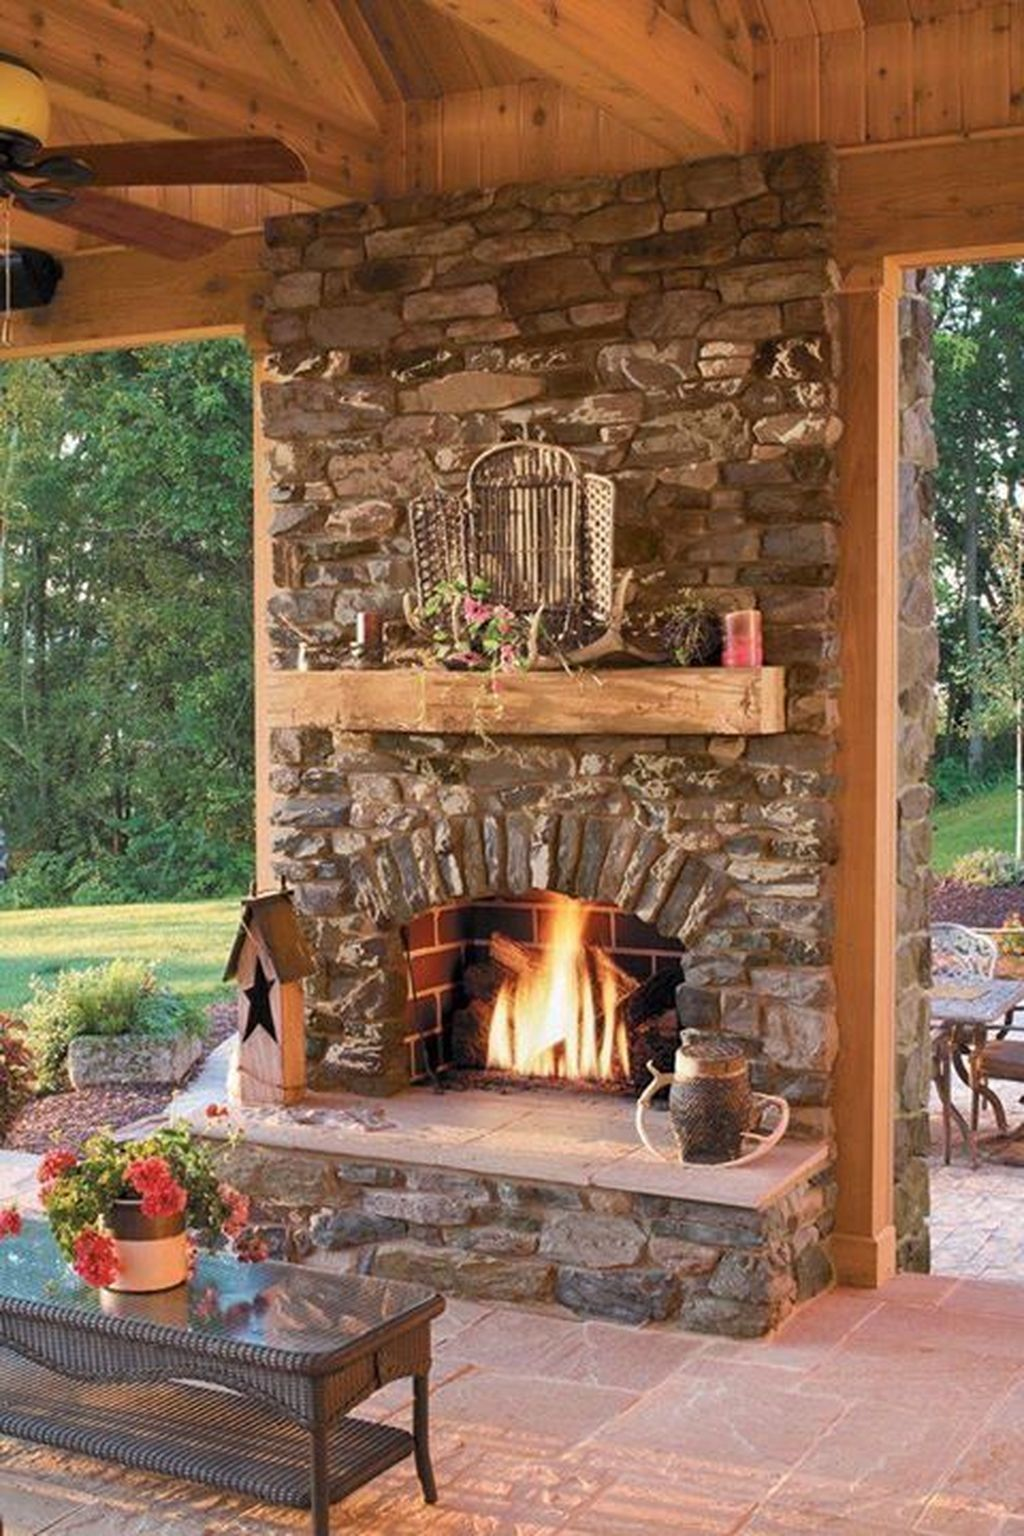 Simple Outdoor Living Spaces Design Ideas With Fireplace ... on Simple Outdoor Fireplace Ideas id=62743